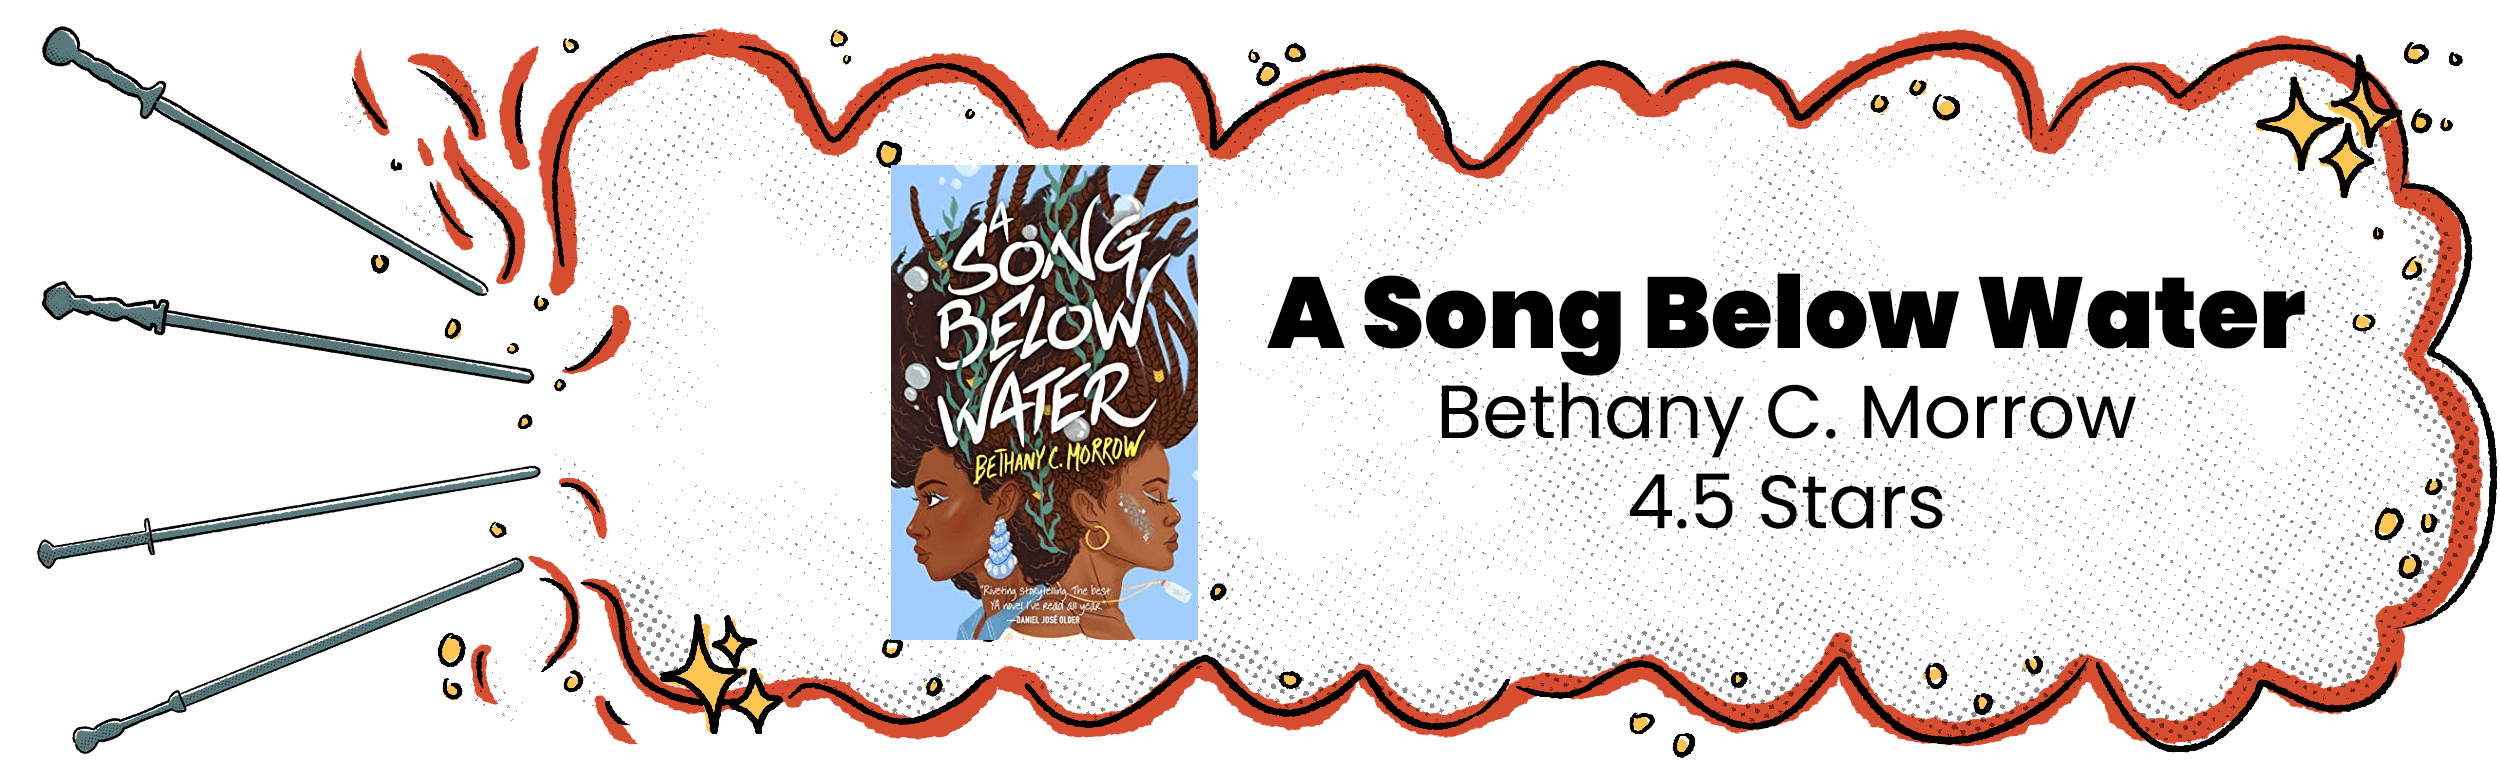 A Song Below Water Review Banner With 4.5 Star Rating